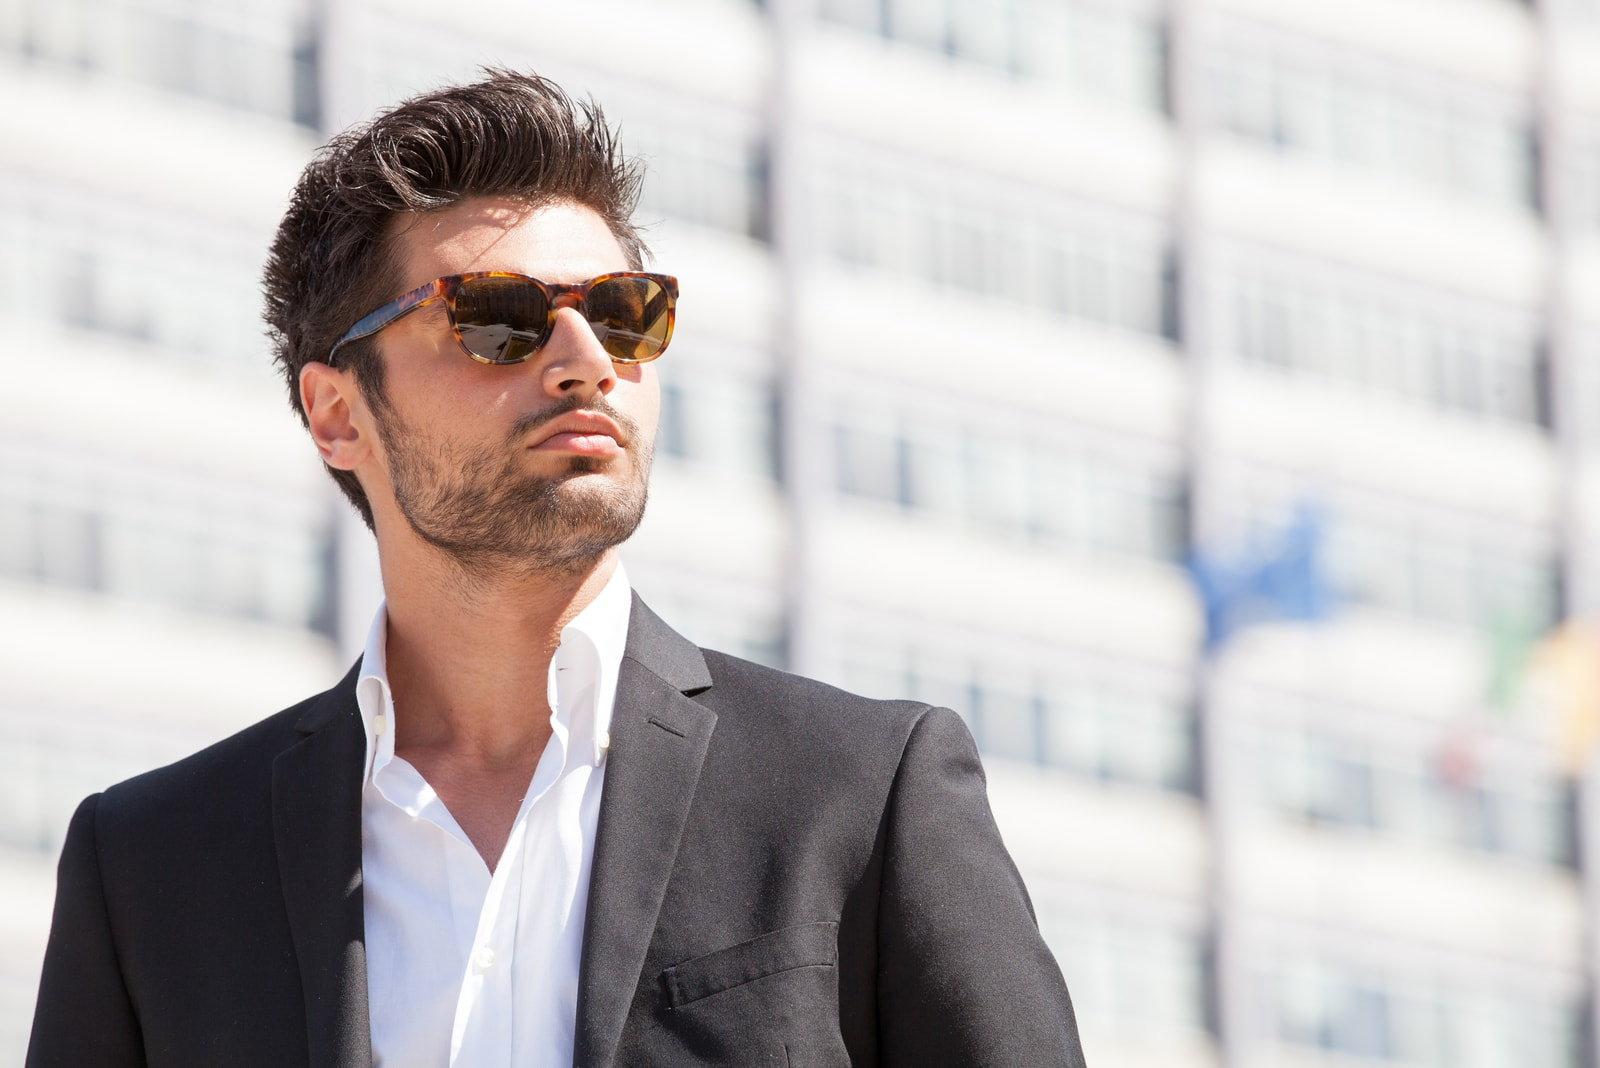 charming man with sunglasses outdoors